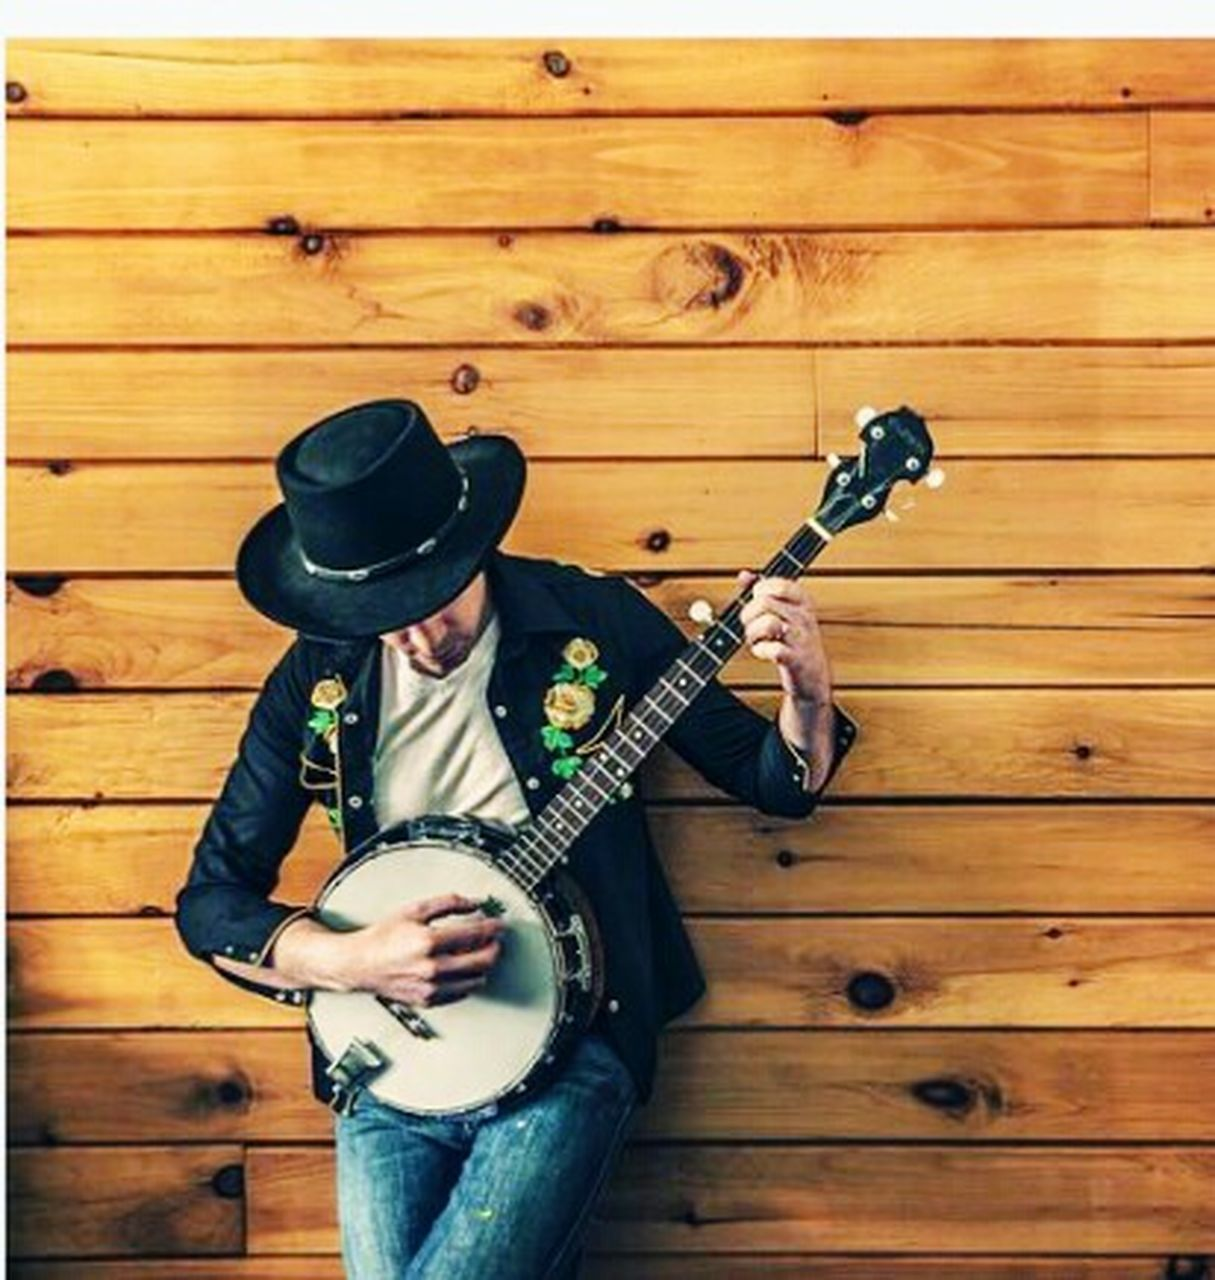 musical instrument, music, guitar, hat, musician, one person, wood - material, holding, one man only, playing, arts culture and entertainment, front view, plucking an instrument, adults only, electric guitar, only men, adult, lifestyles, standing, outdoors, men, young adult, people, performance, day